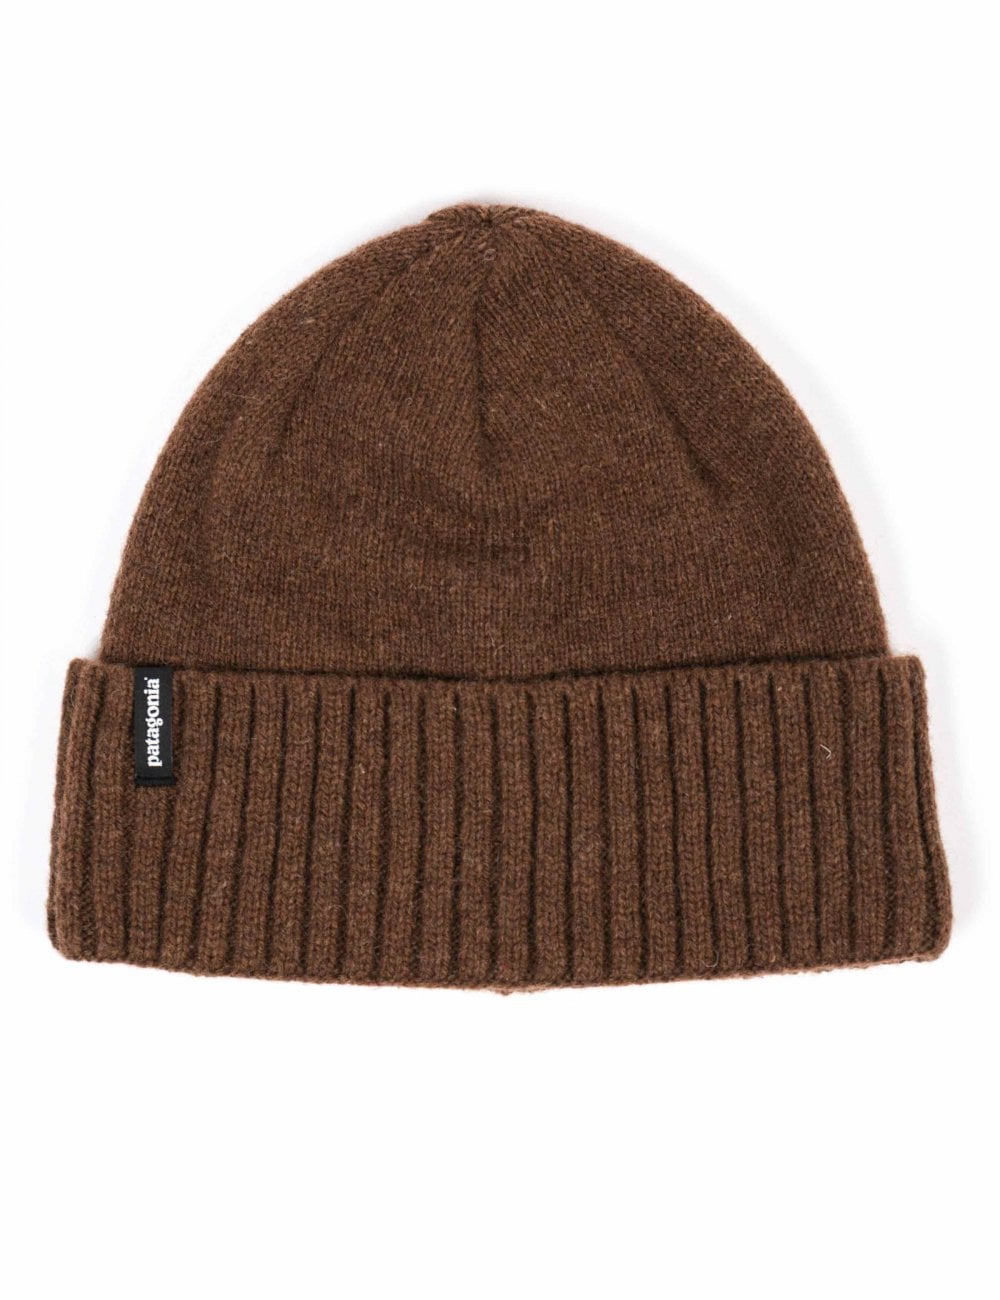 743358137fff1 Patagonia Brodeo Beanie Hat - Timber Brown - Accessories from Fat ...